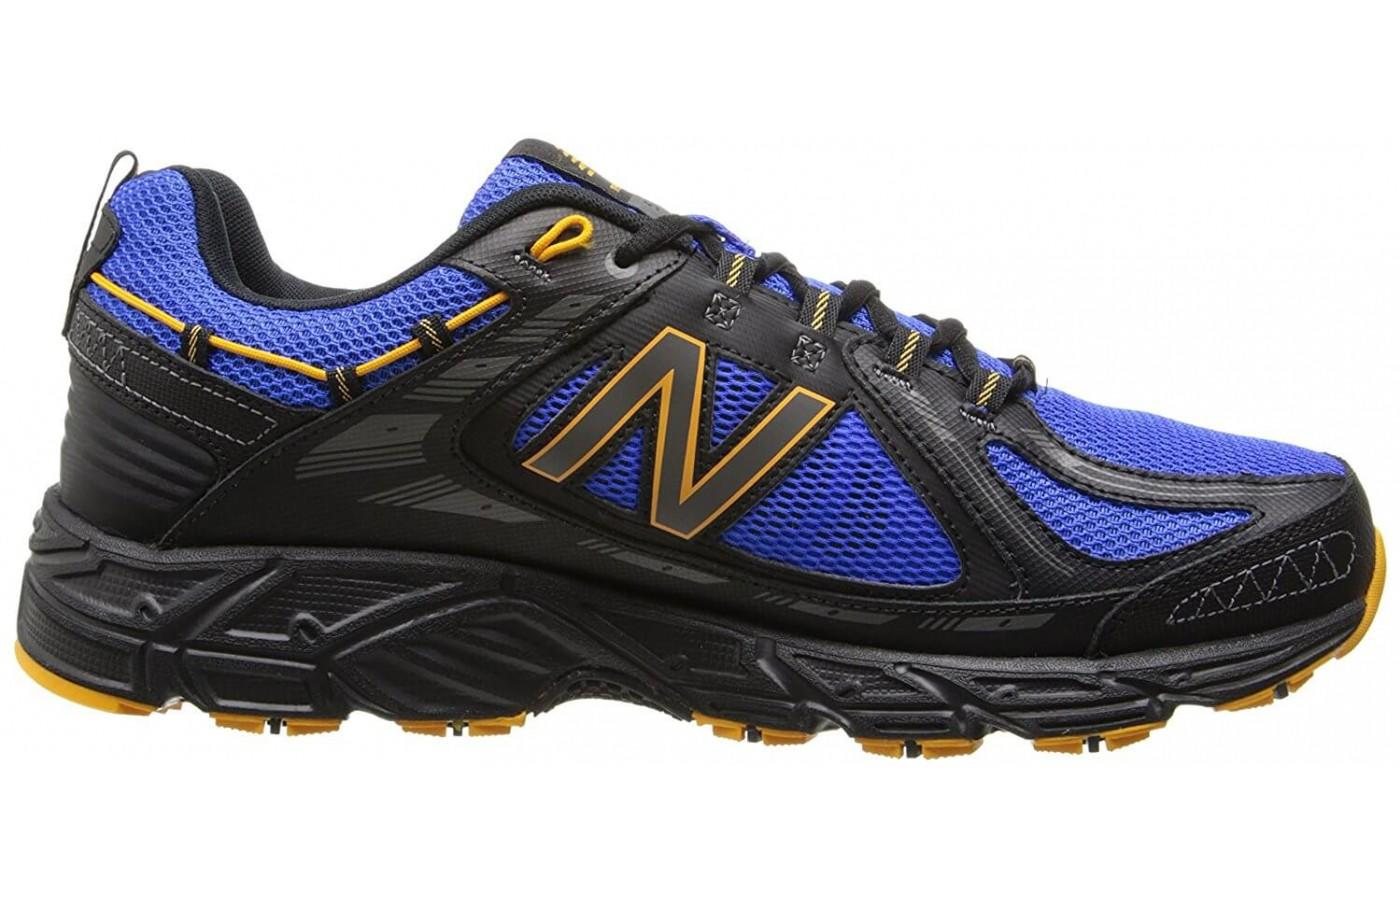 the right side of the New Balance 510 v2